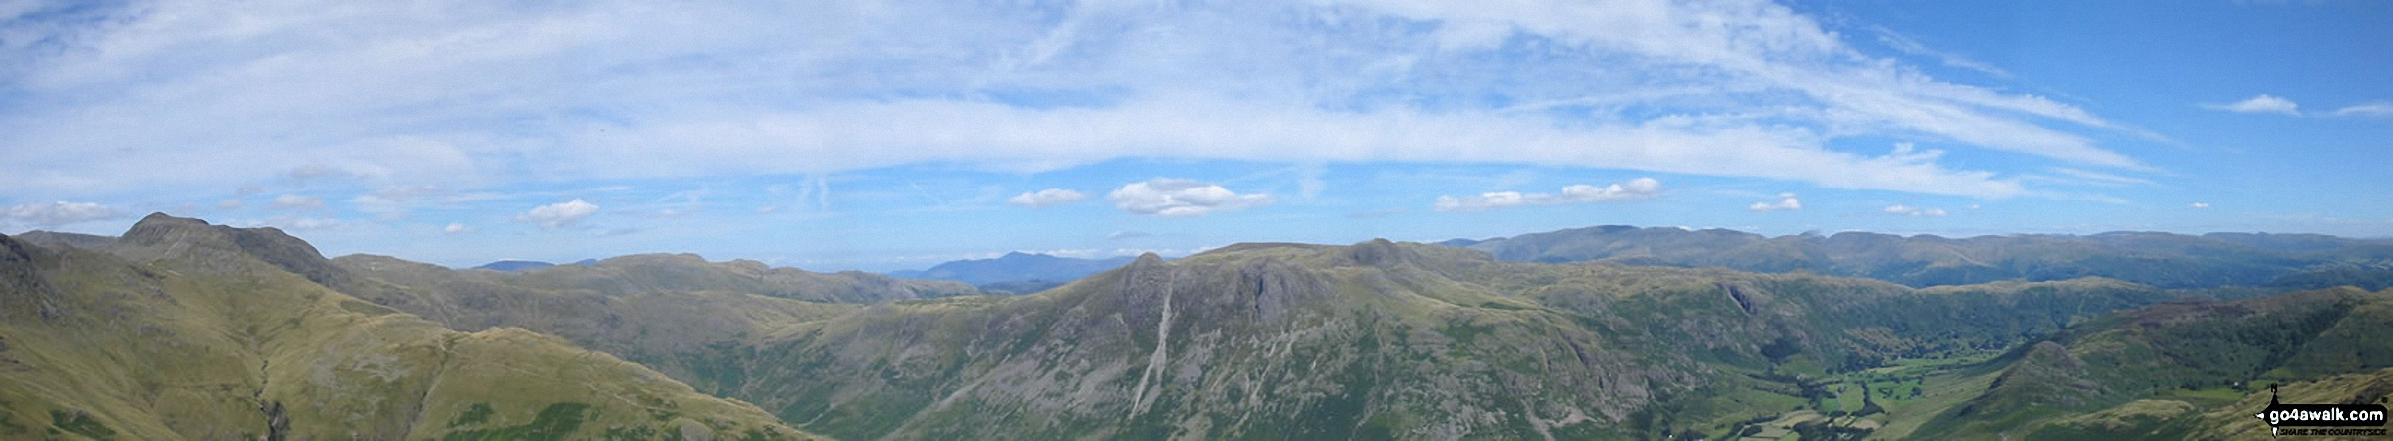 *Bow Fell (Bowfell), Rosett Pike and The Langdale Pikes from Pike of Blisco (Pike o' Blisco)